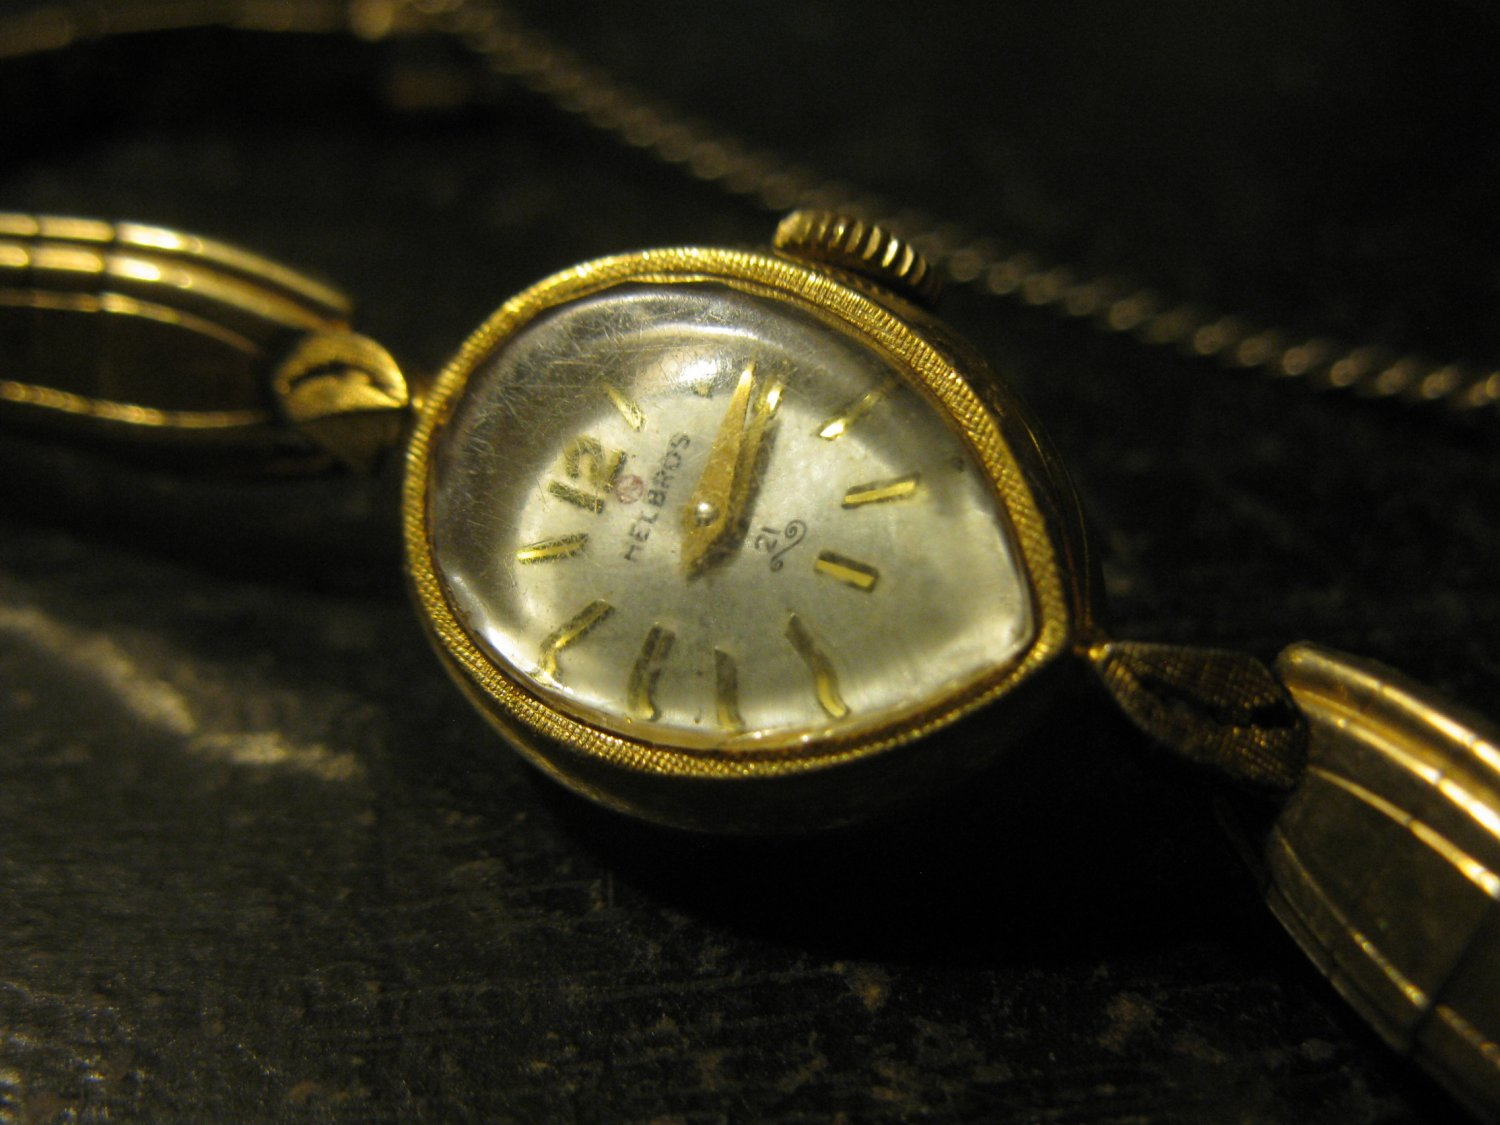 old Helbros 21 jewel Ladies Wrist Watch - w/ Duchess 1/20th 10k Gold Filled Band